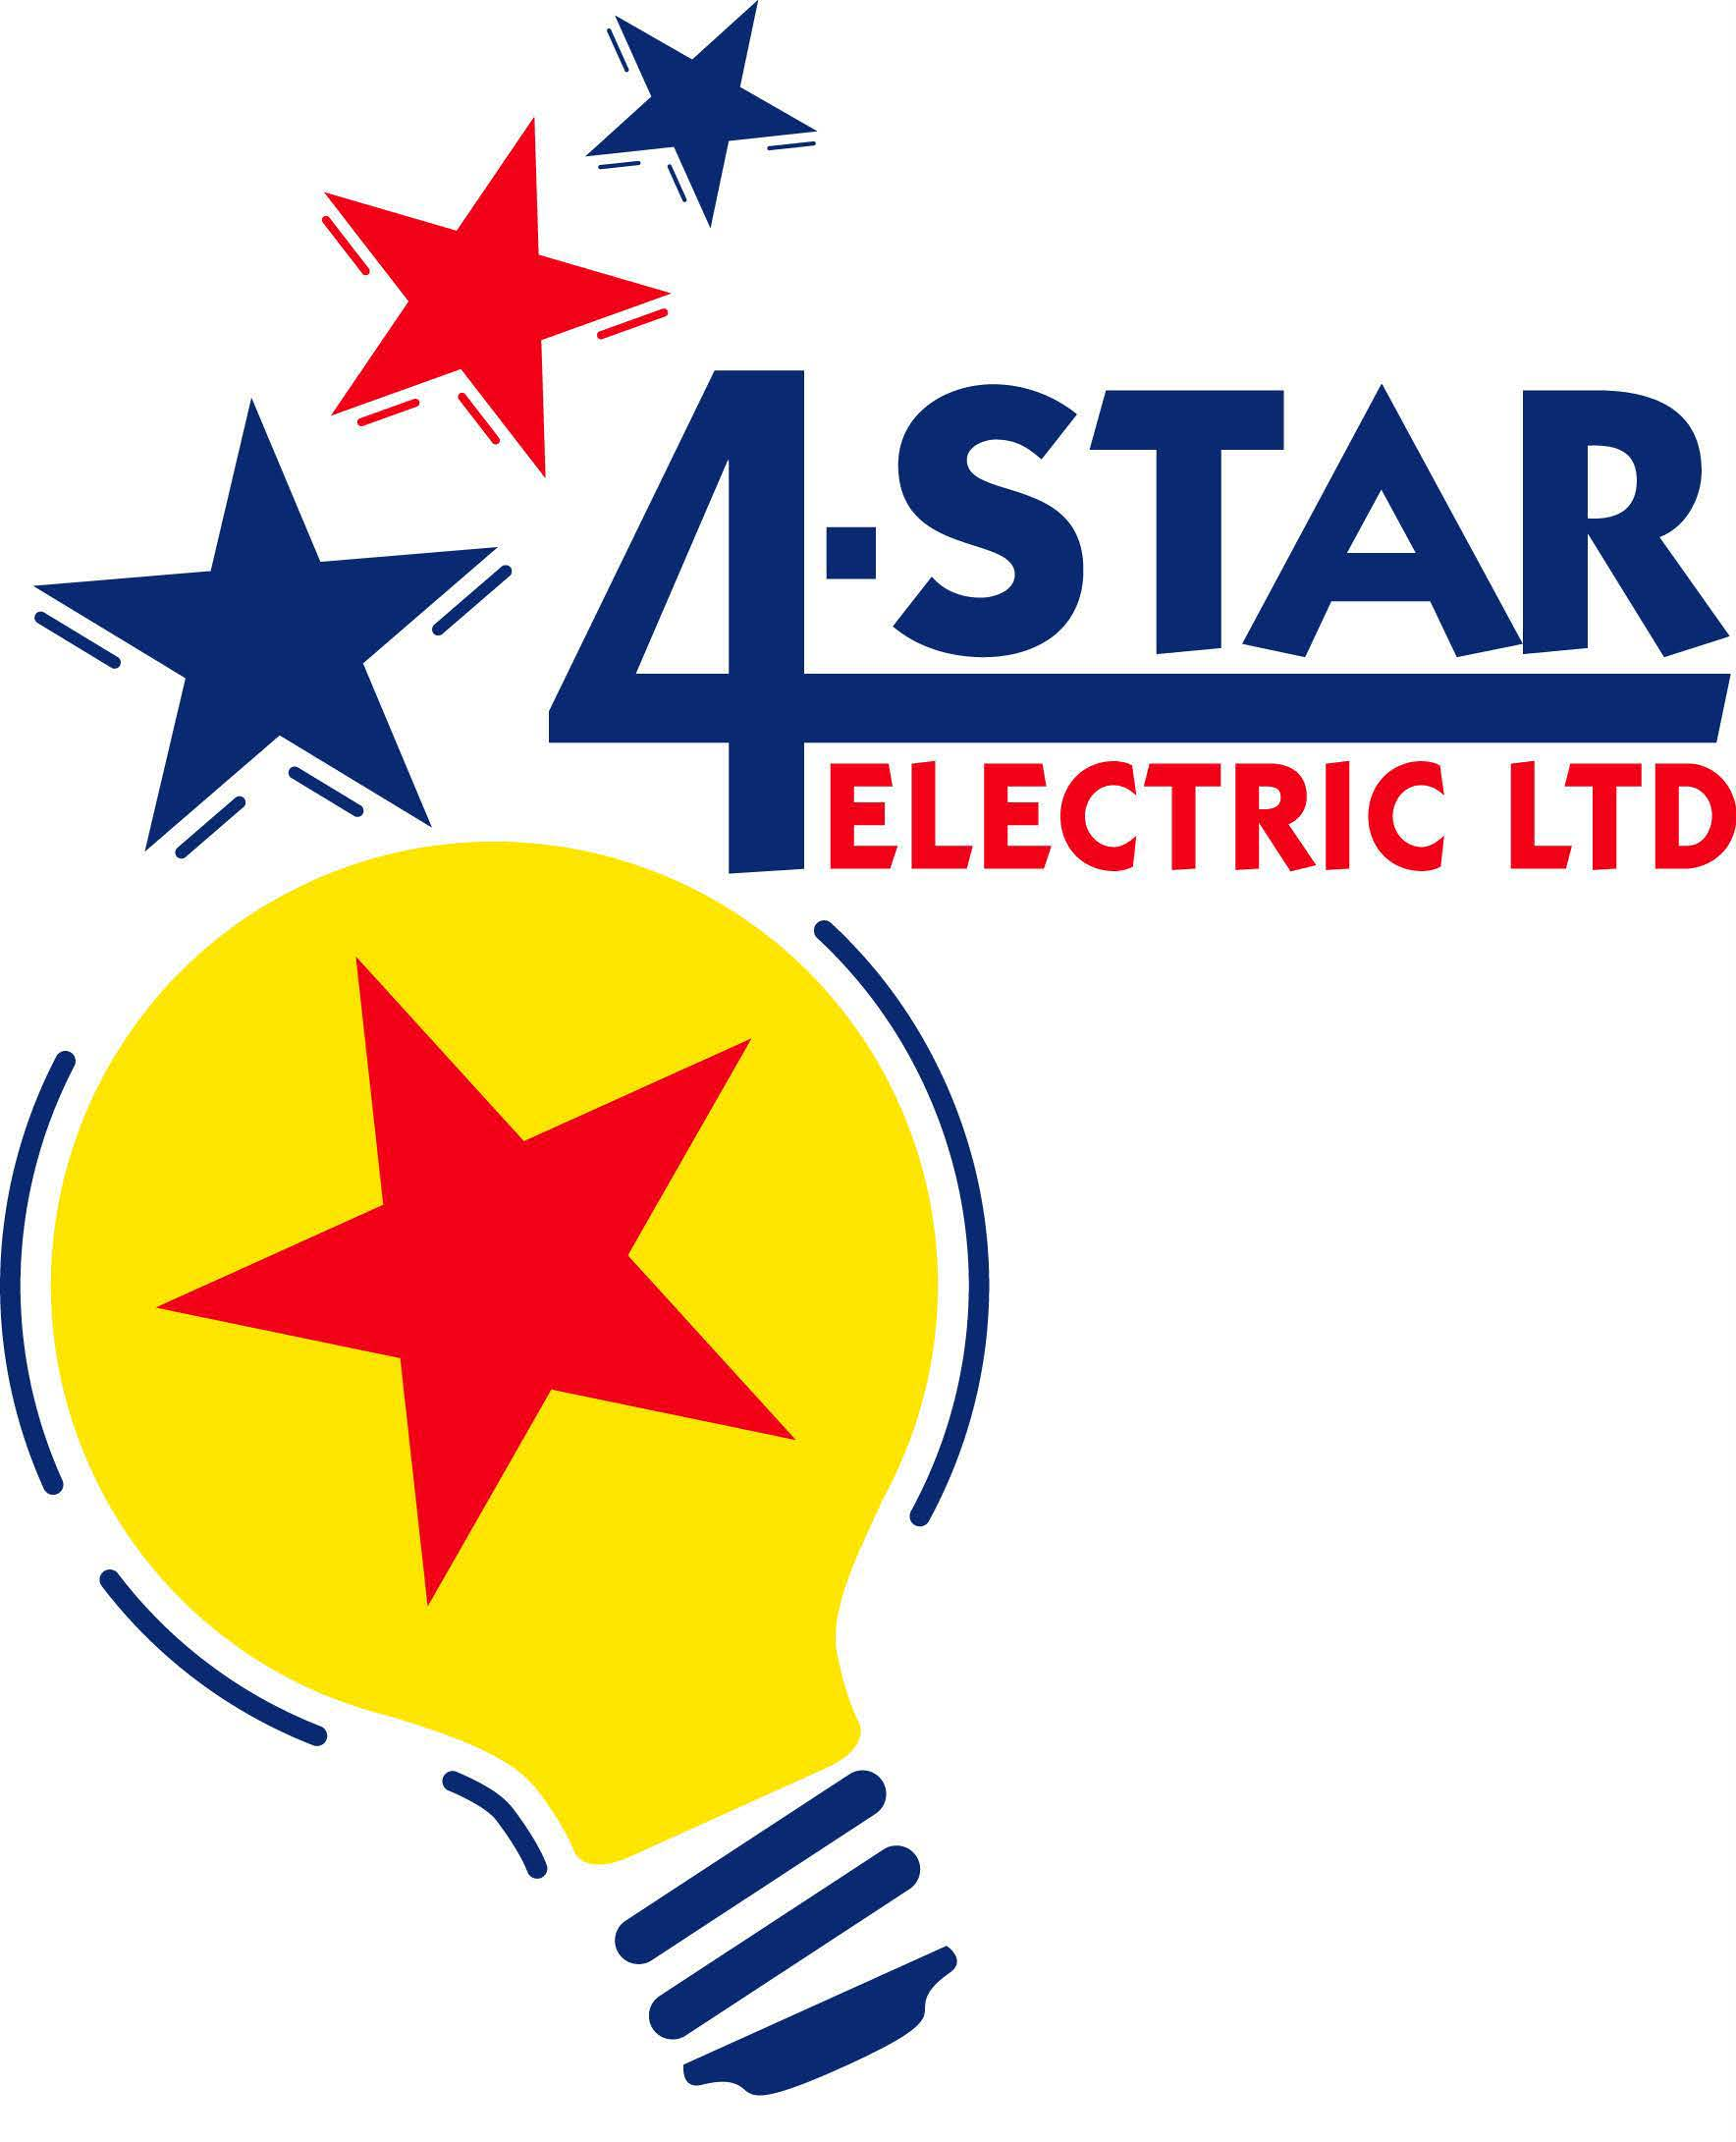 4-Star-Electric